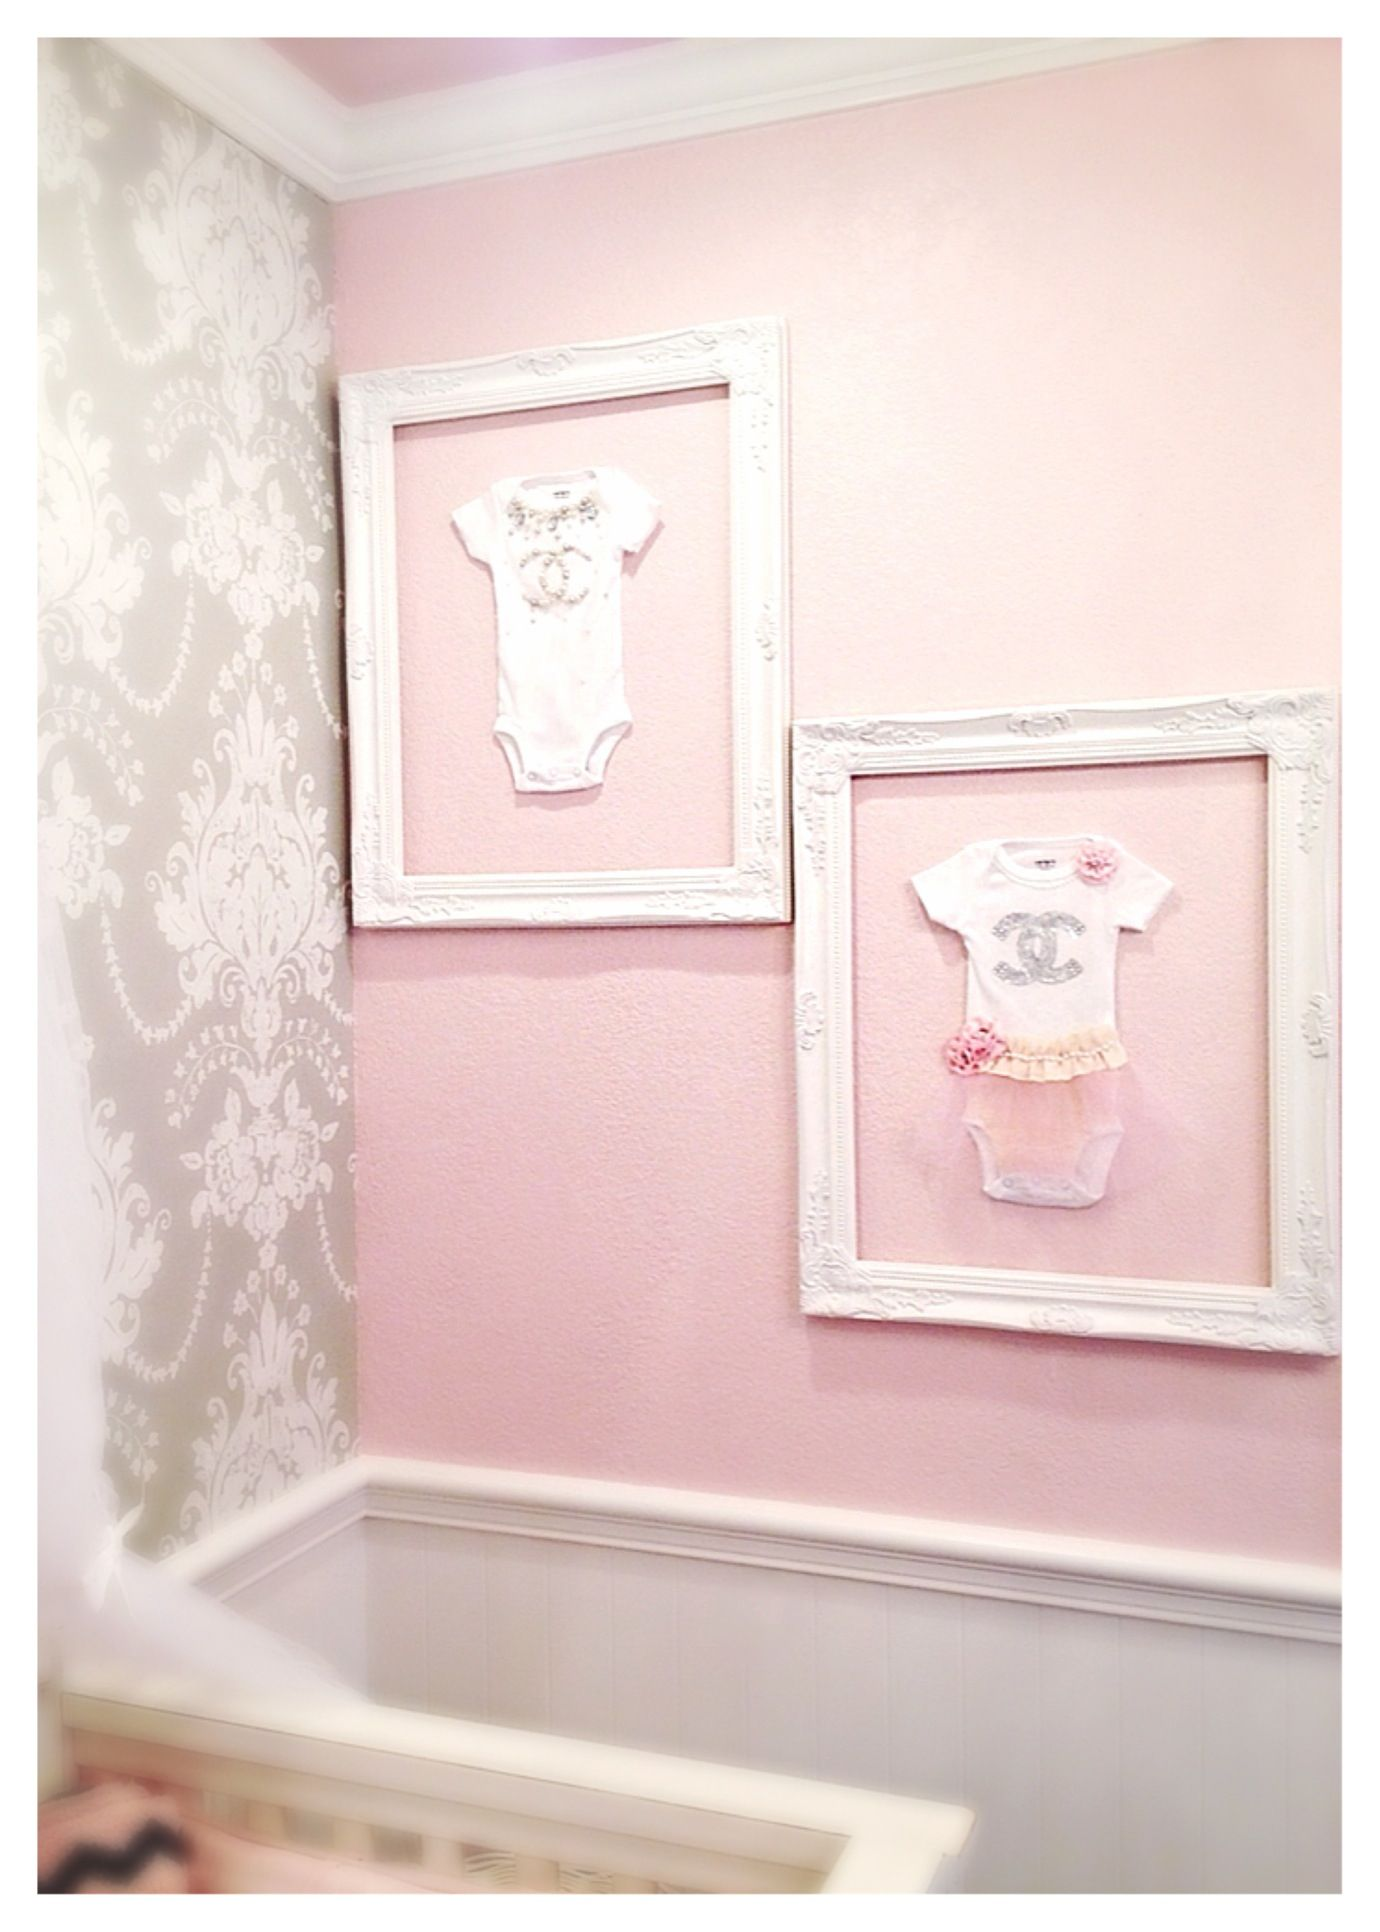 Chanel Baby Onsies In Baroque White Frames Perfect Baby Glam